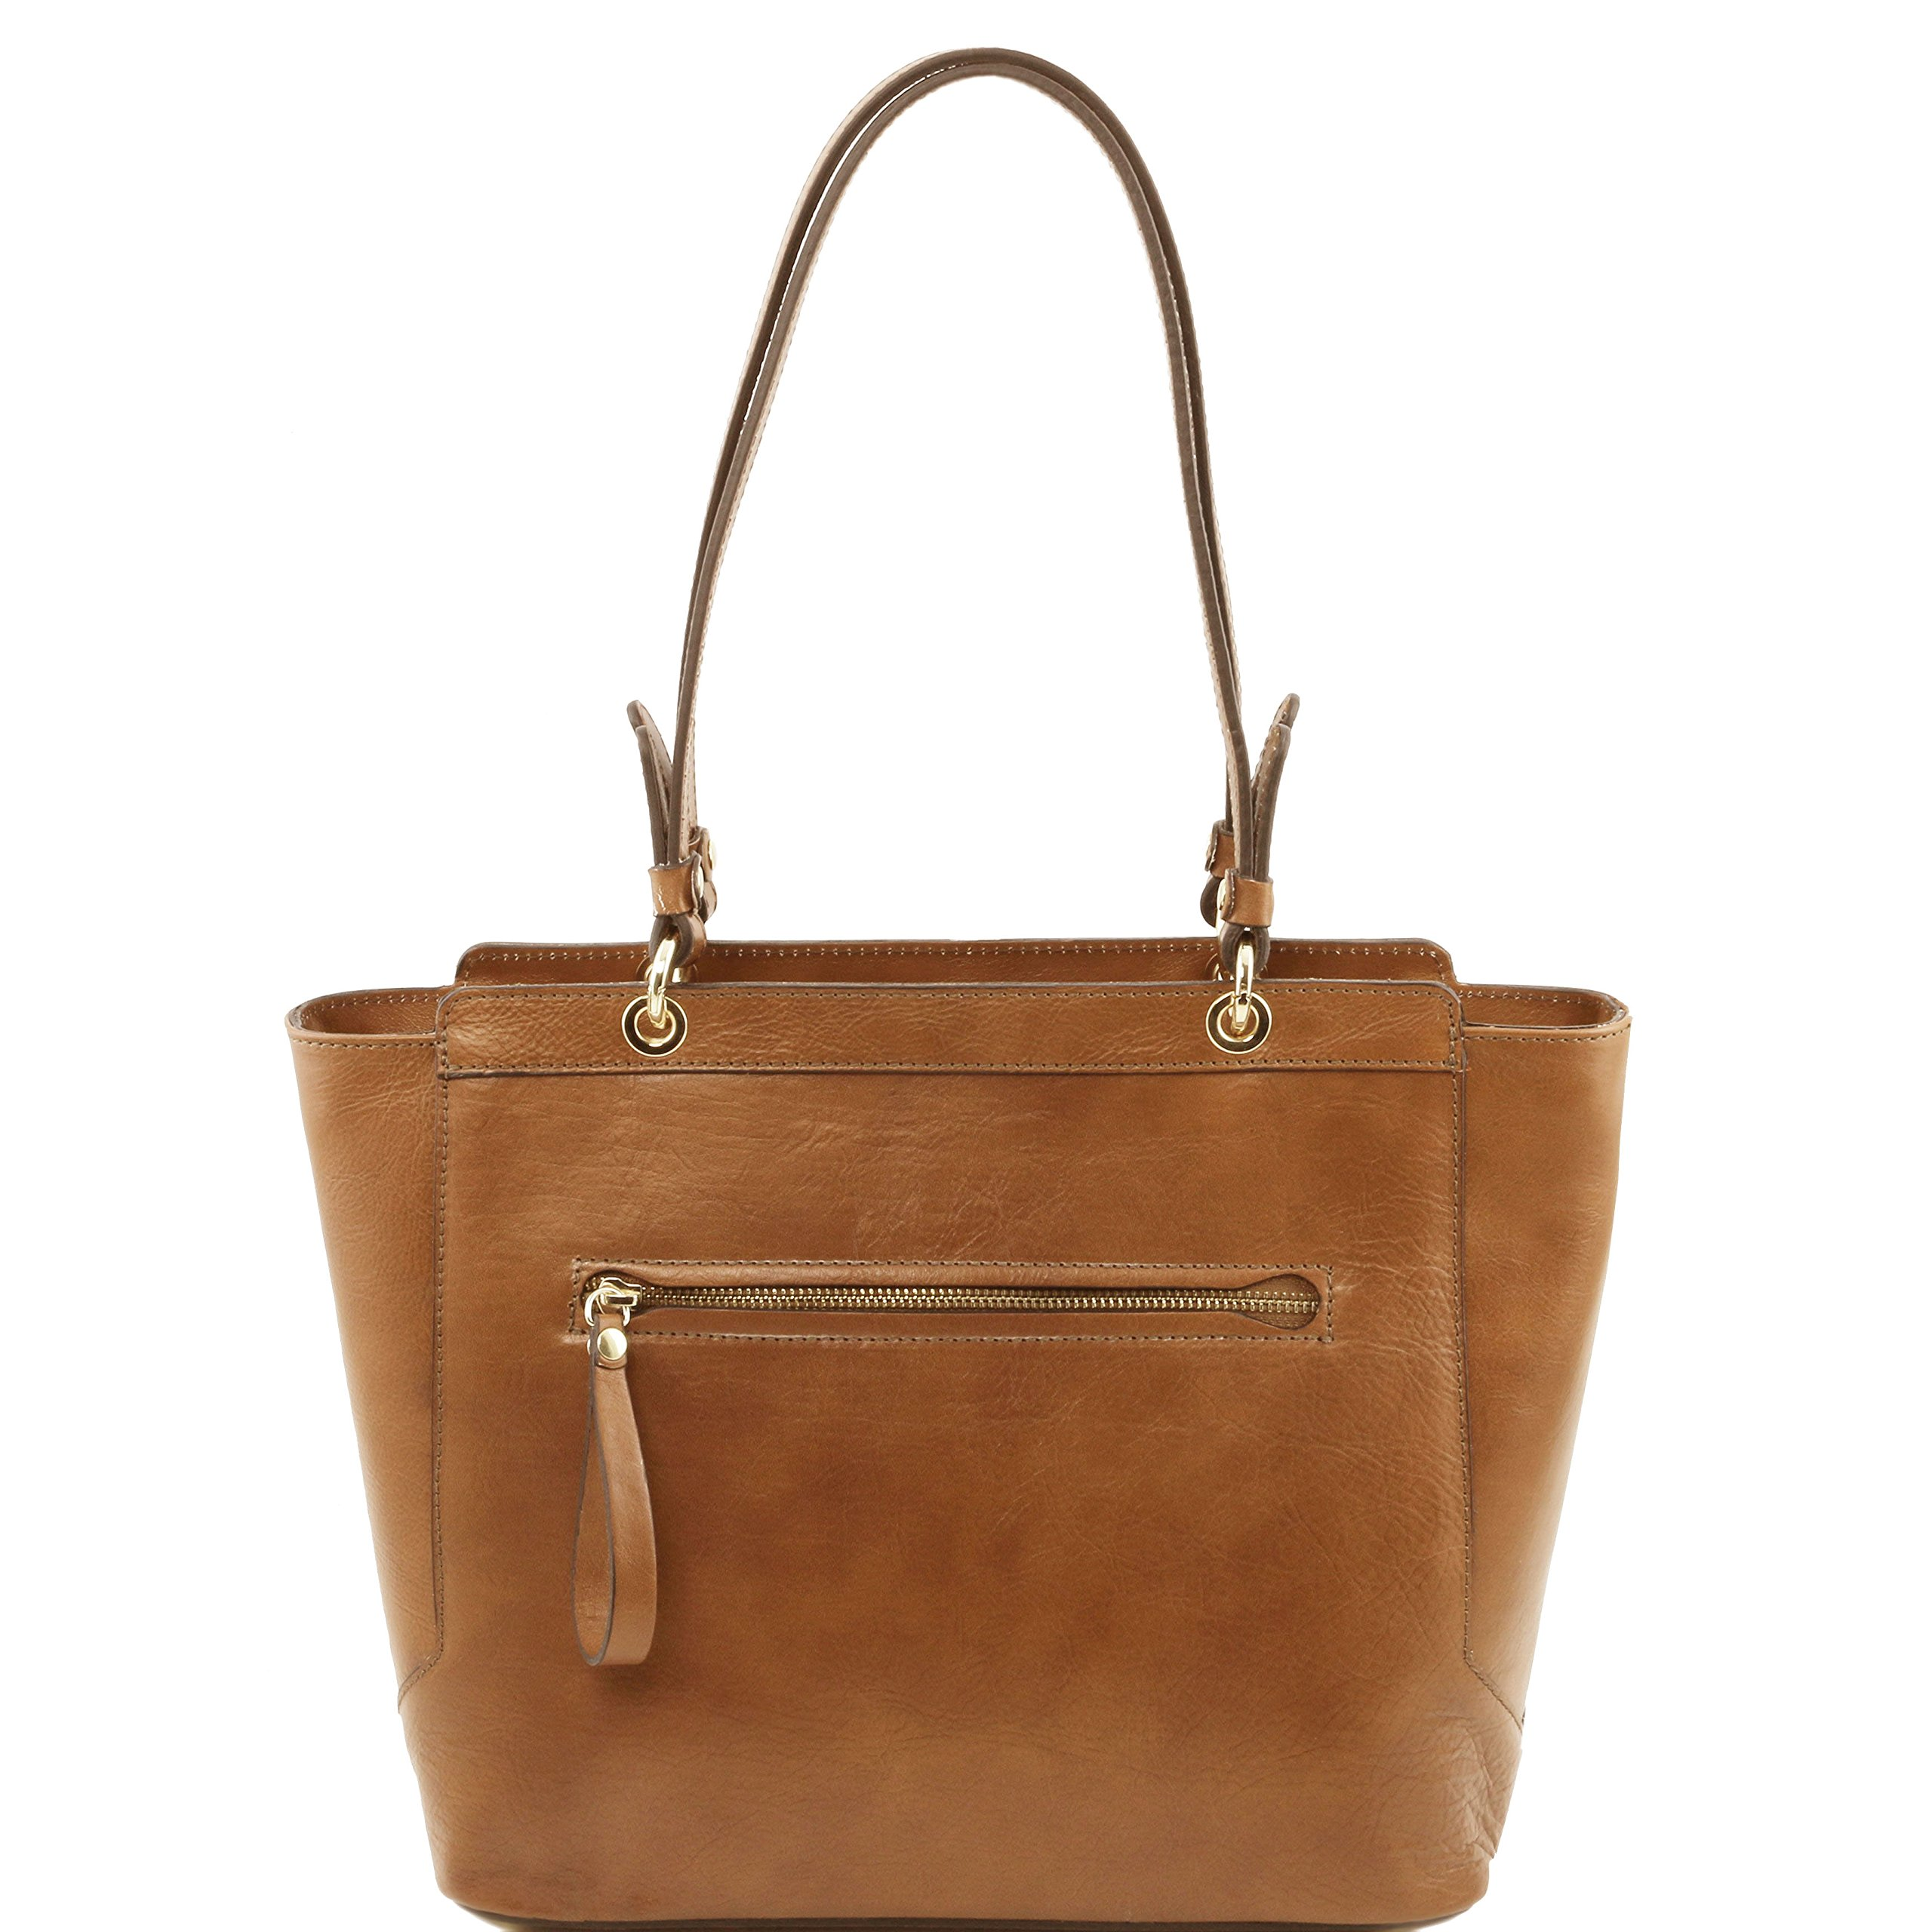 Tuscany Leather TL NeoClassic Leather tote with two handles Dark Taupe